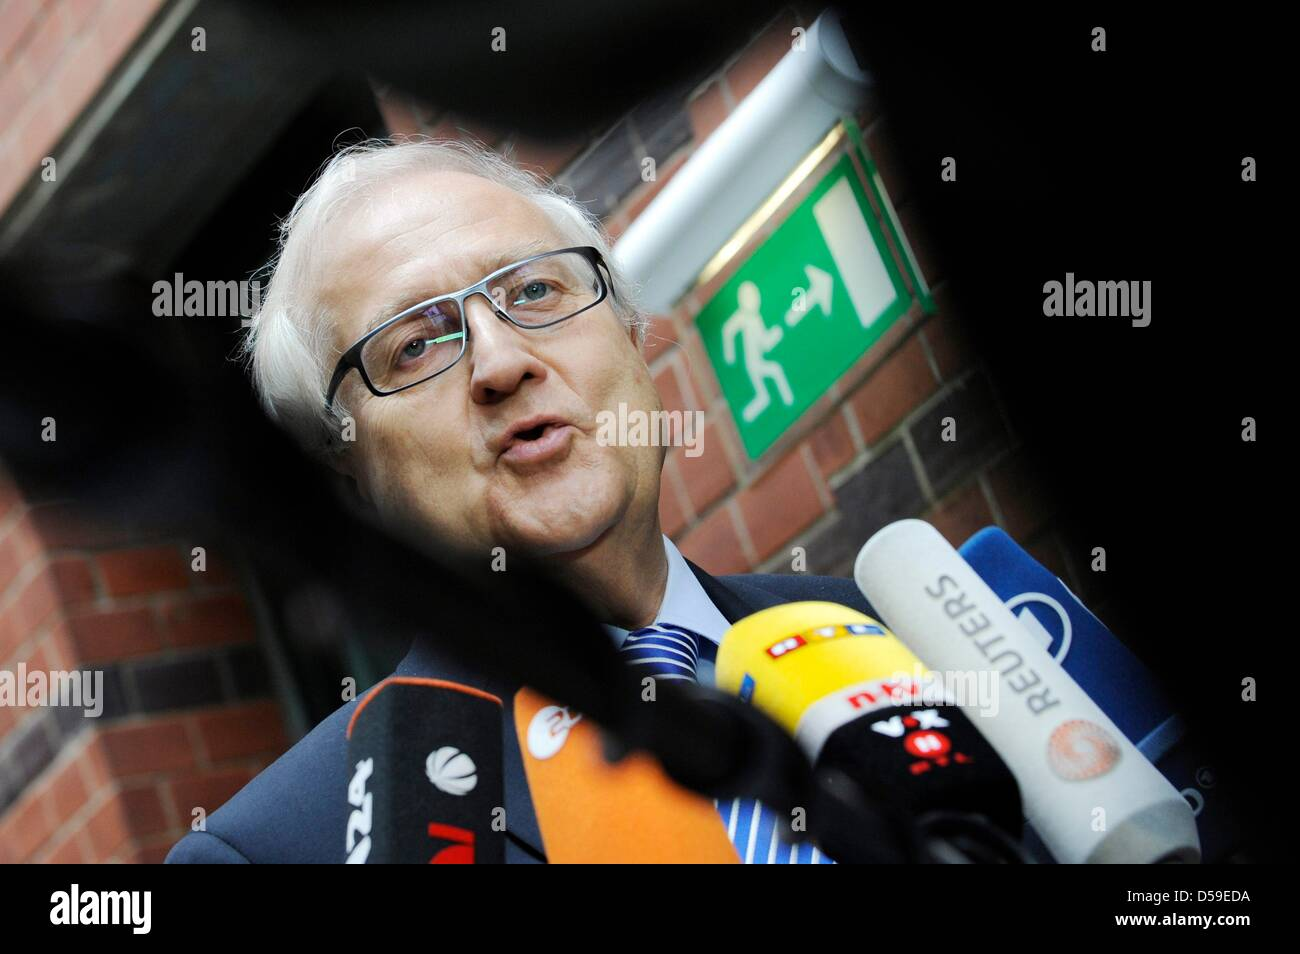 FDP deputy chairman Rainer Bruederle gives a quick interview at the party headquarters in Berlin, Germany, - Stock Image